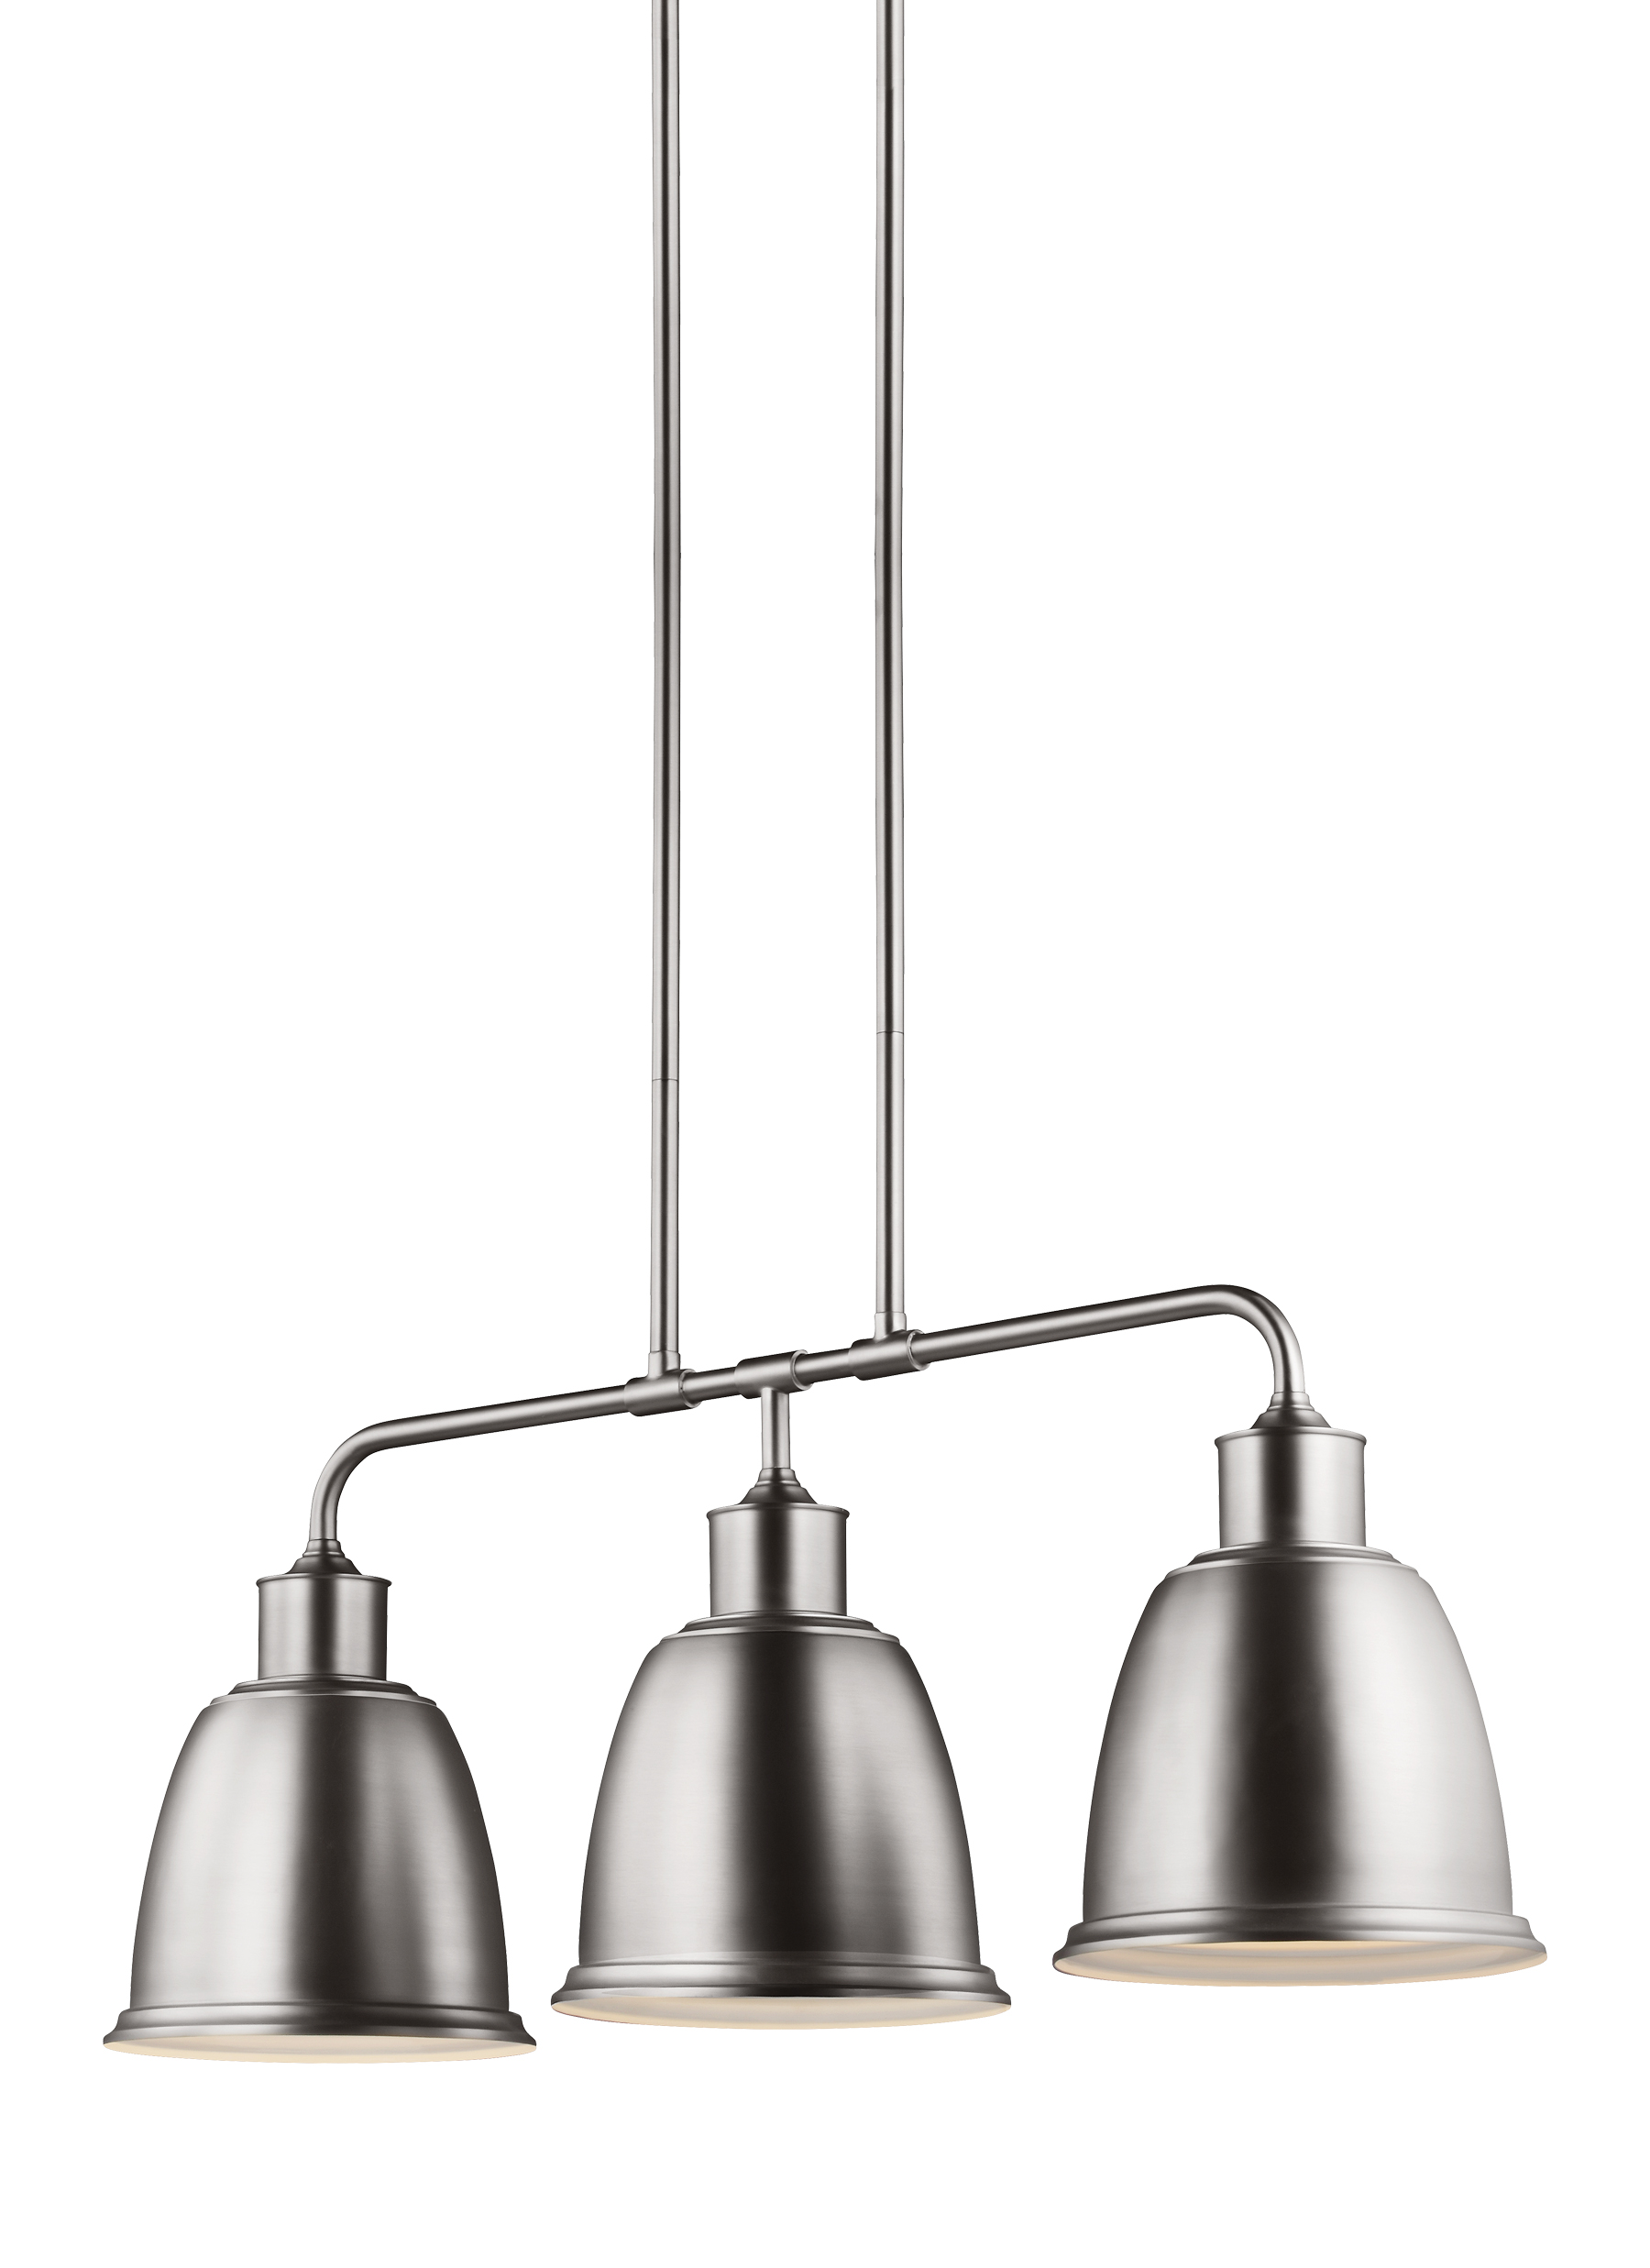 FSN Light IslandSatin Nickel - 3 pendant light fixture island